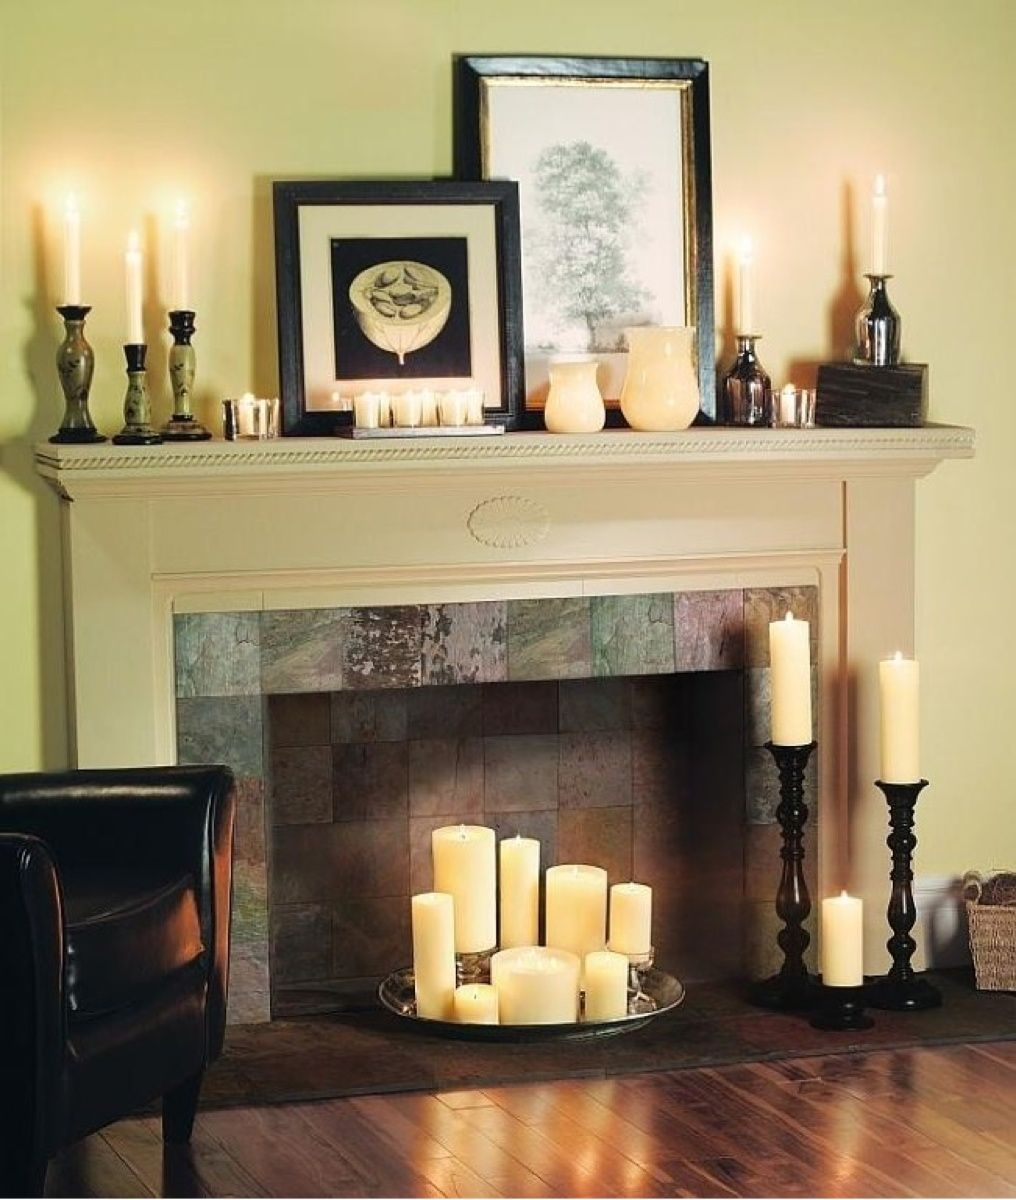 Decorating Fireplaces With Candles: Pinned From Pin It For IPhone